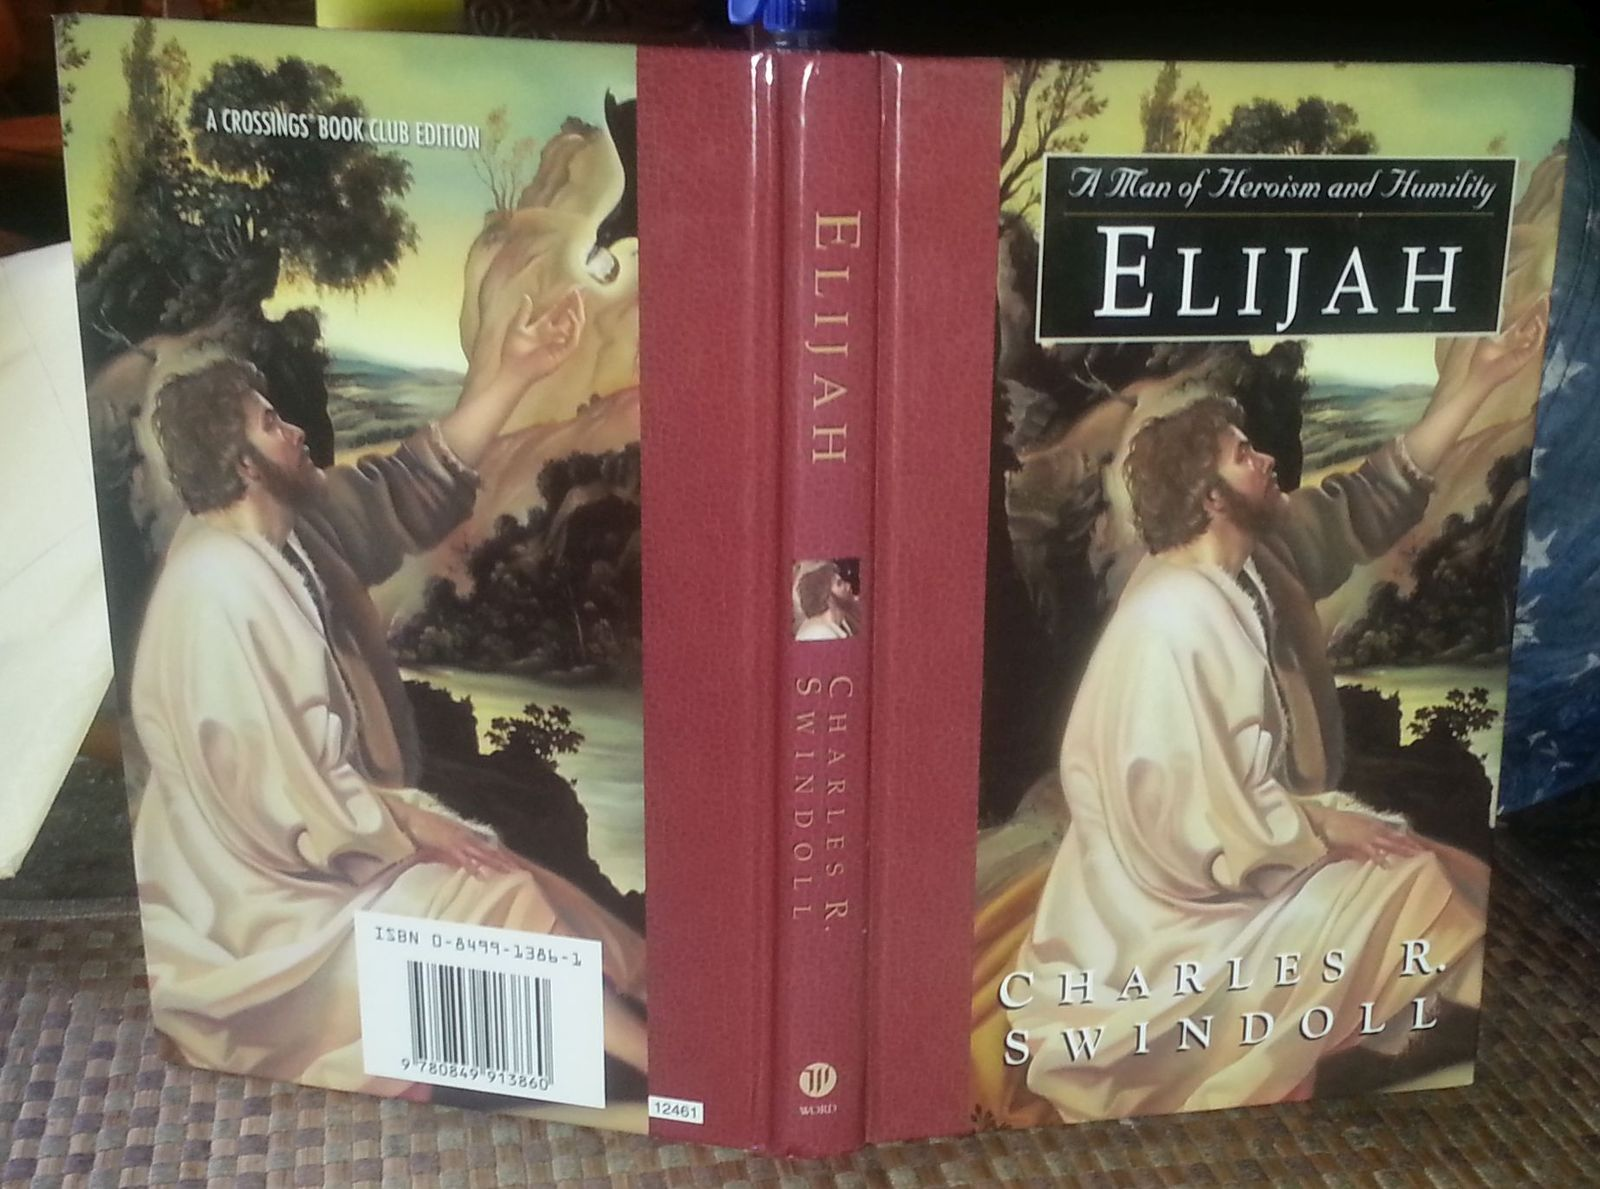 Elijah by Charles R. Swindoll 2000 HB Heroism and Humility